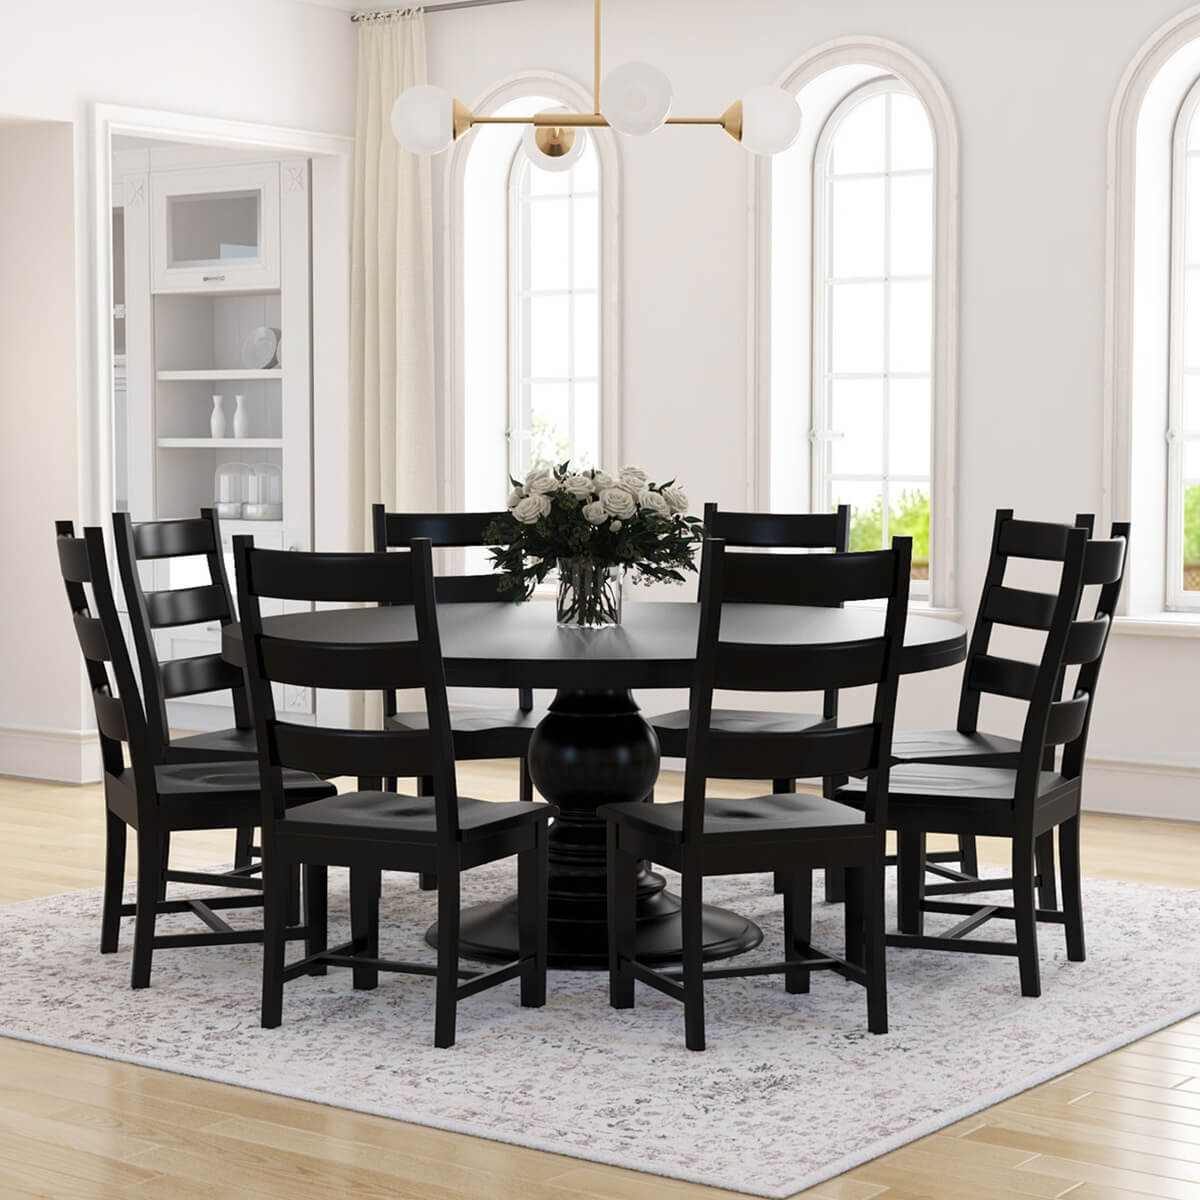 Nottingham rustic solid wood black round dining room table set Round dining table set